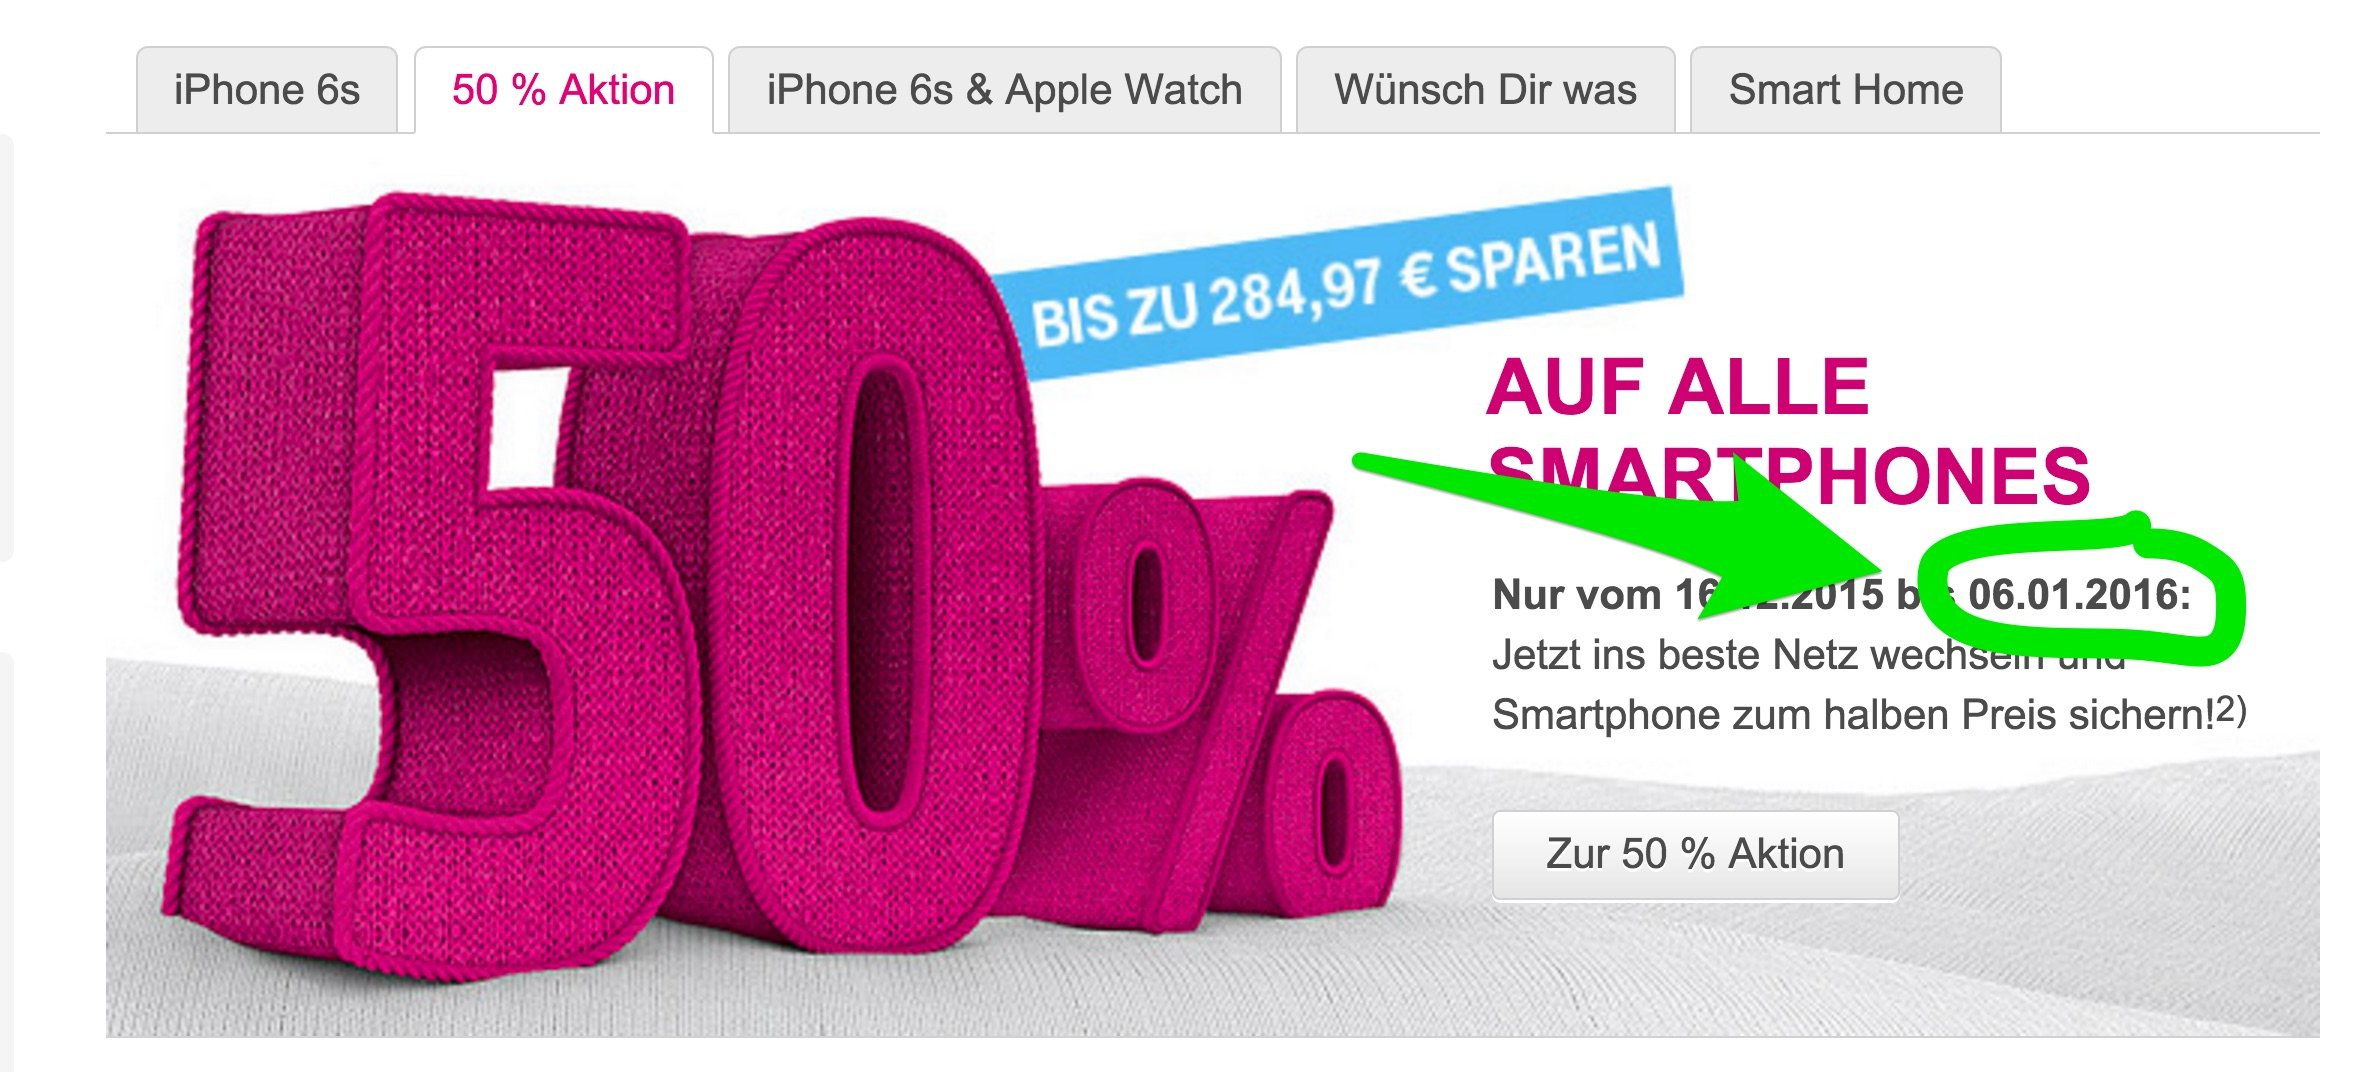 Letzte Chance: T-Mobile iPhone 6s Aktion endet! 3